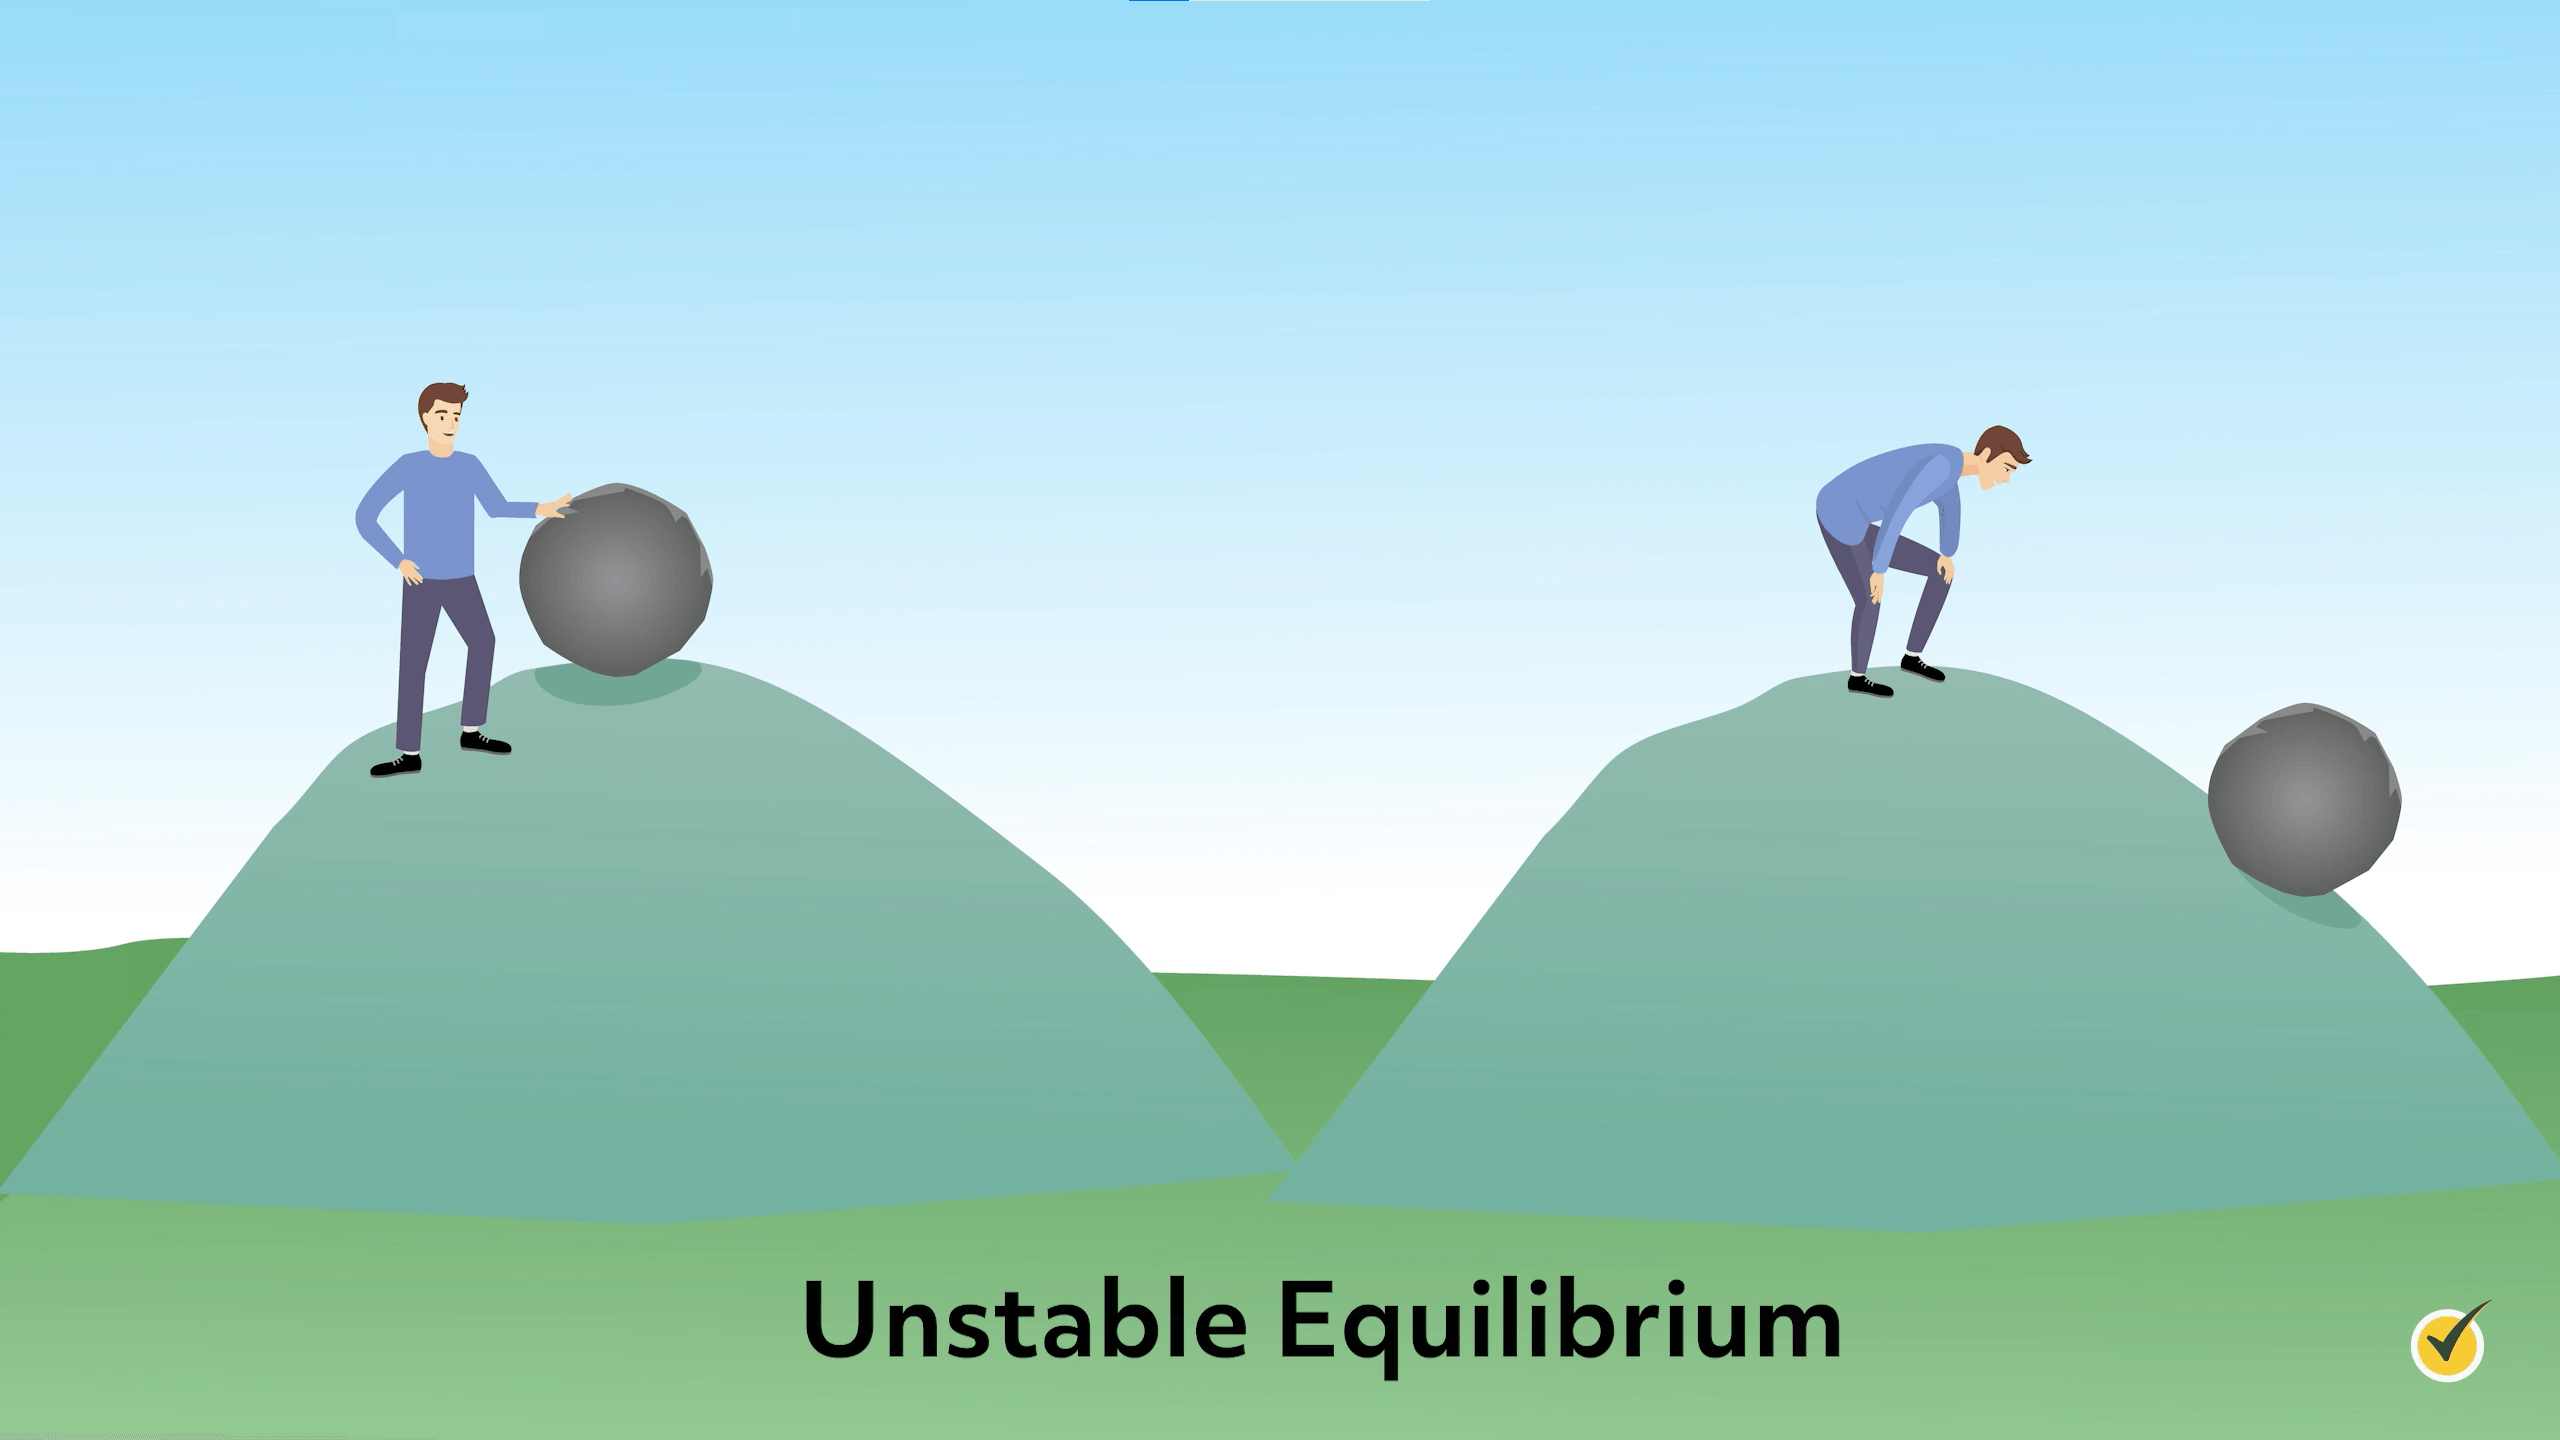 Image of unstable equilibrium. There is a rock on top of a hill, the man pushes, and the rock rolls down the hill.